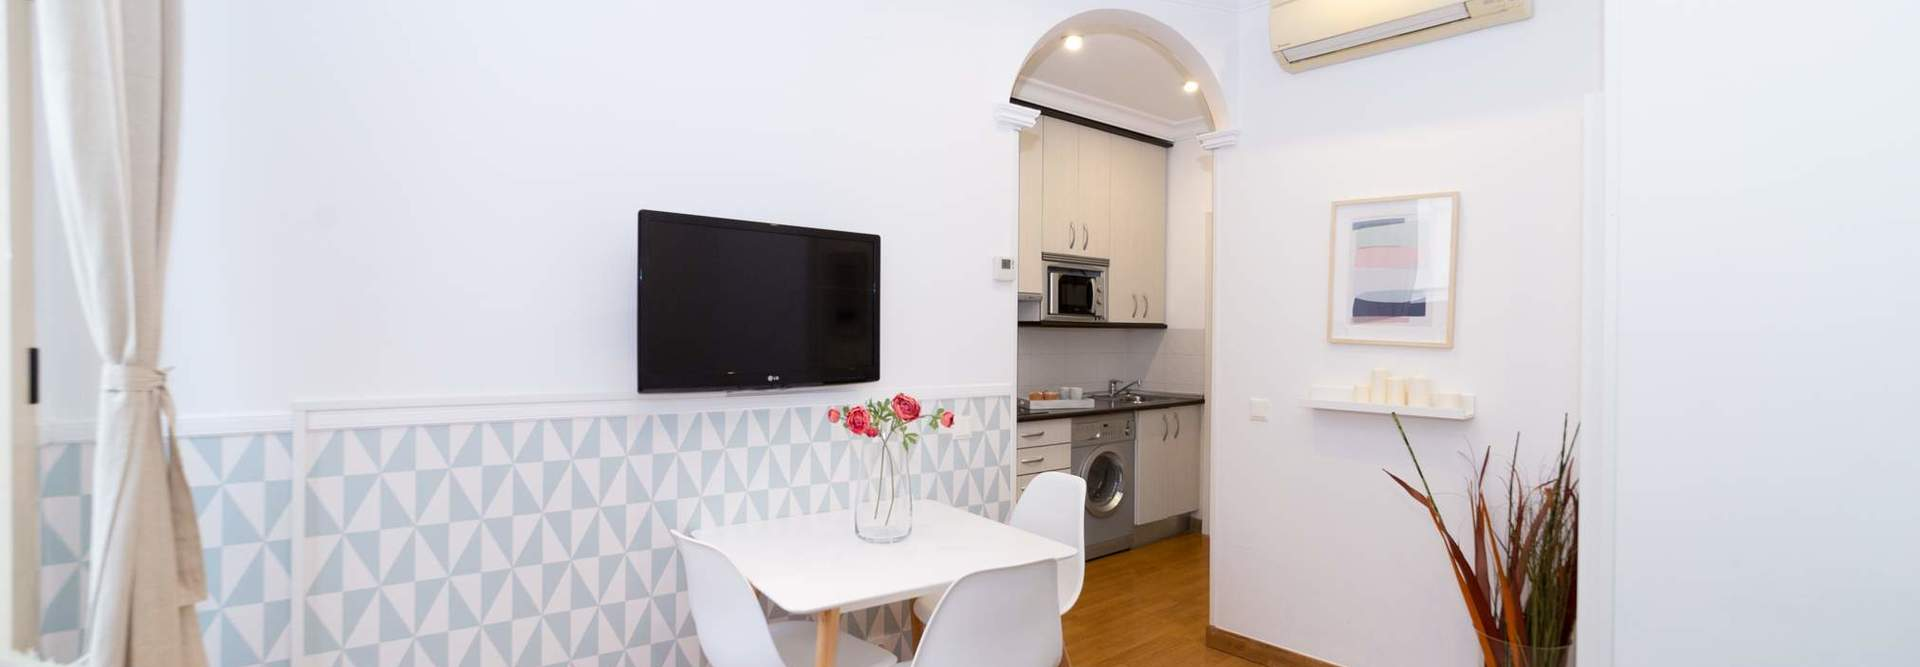 Home alquiler apartamentos madrid mad4rent 20